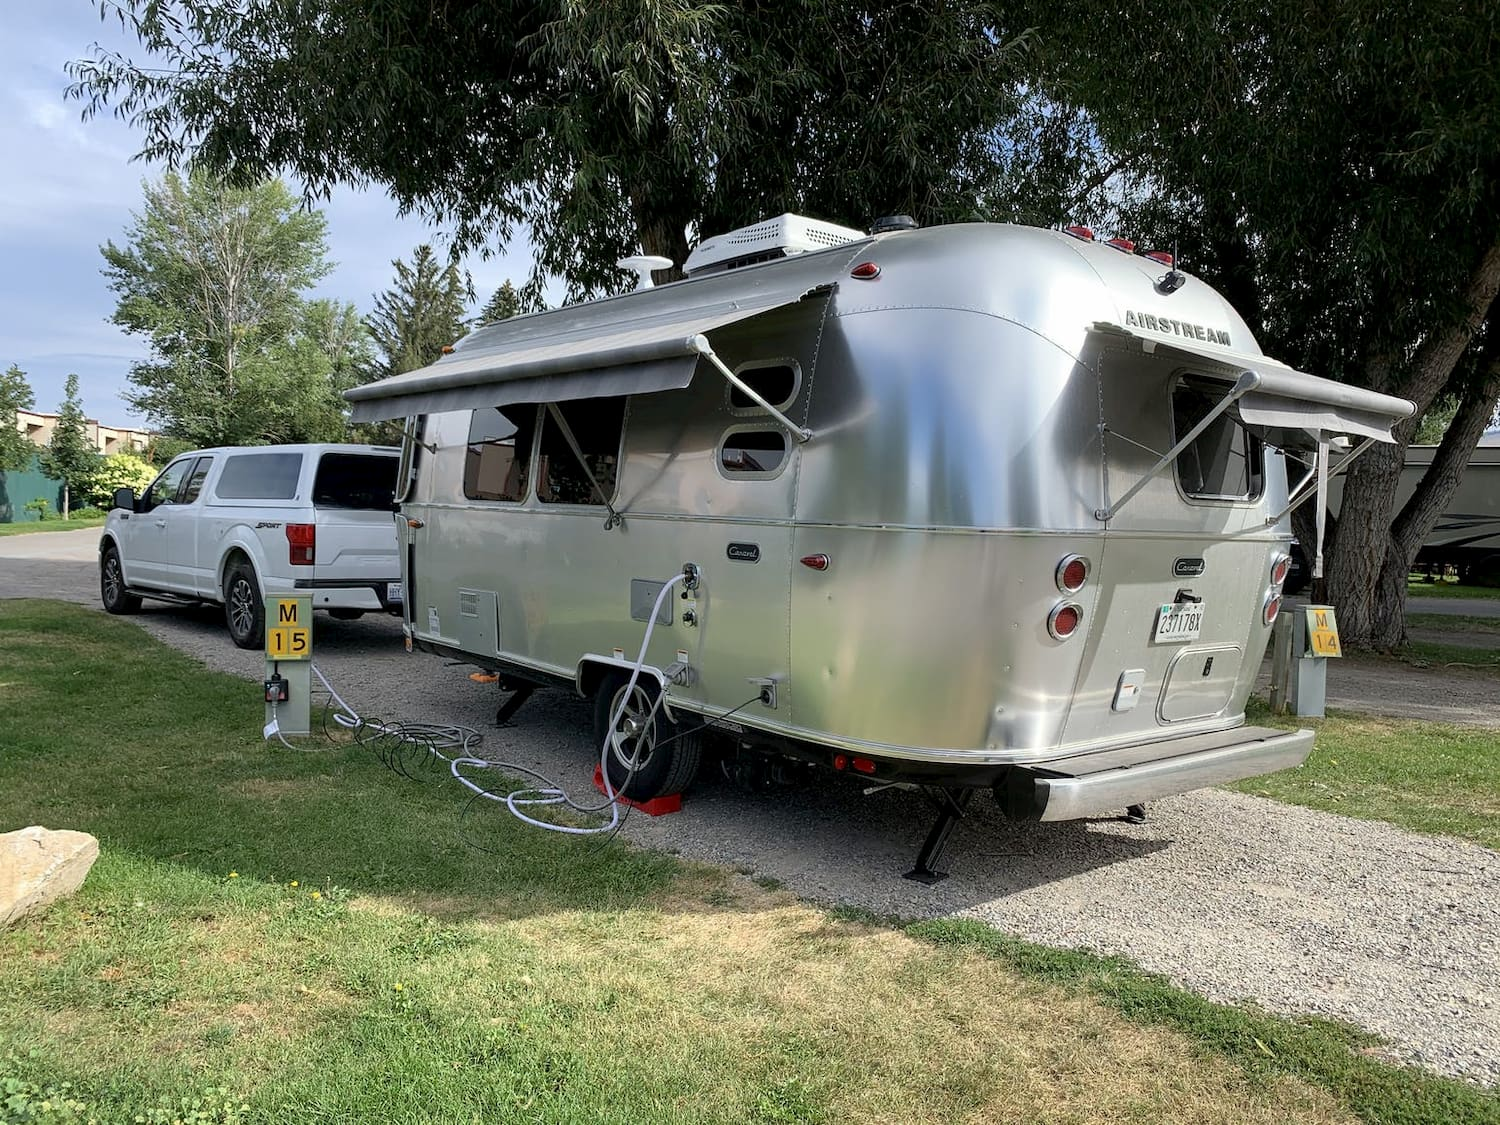 airstream trailer parked at campsite